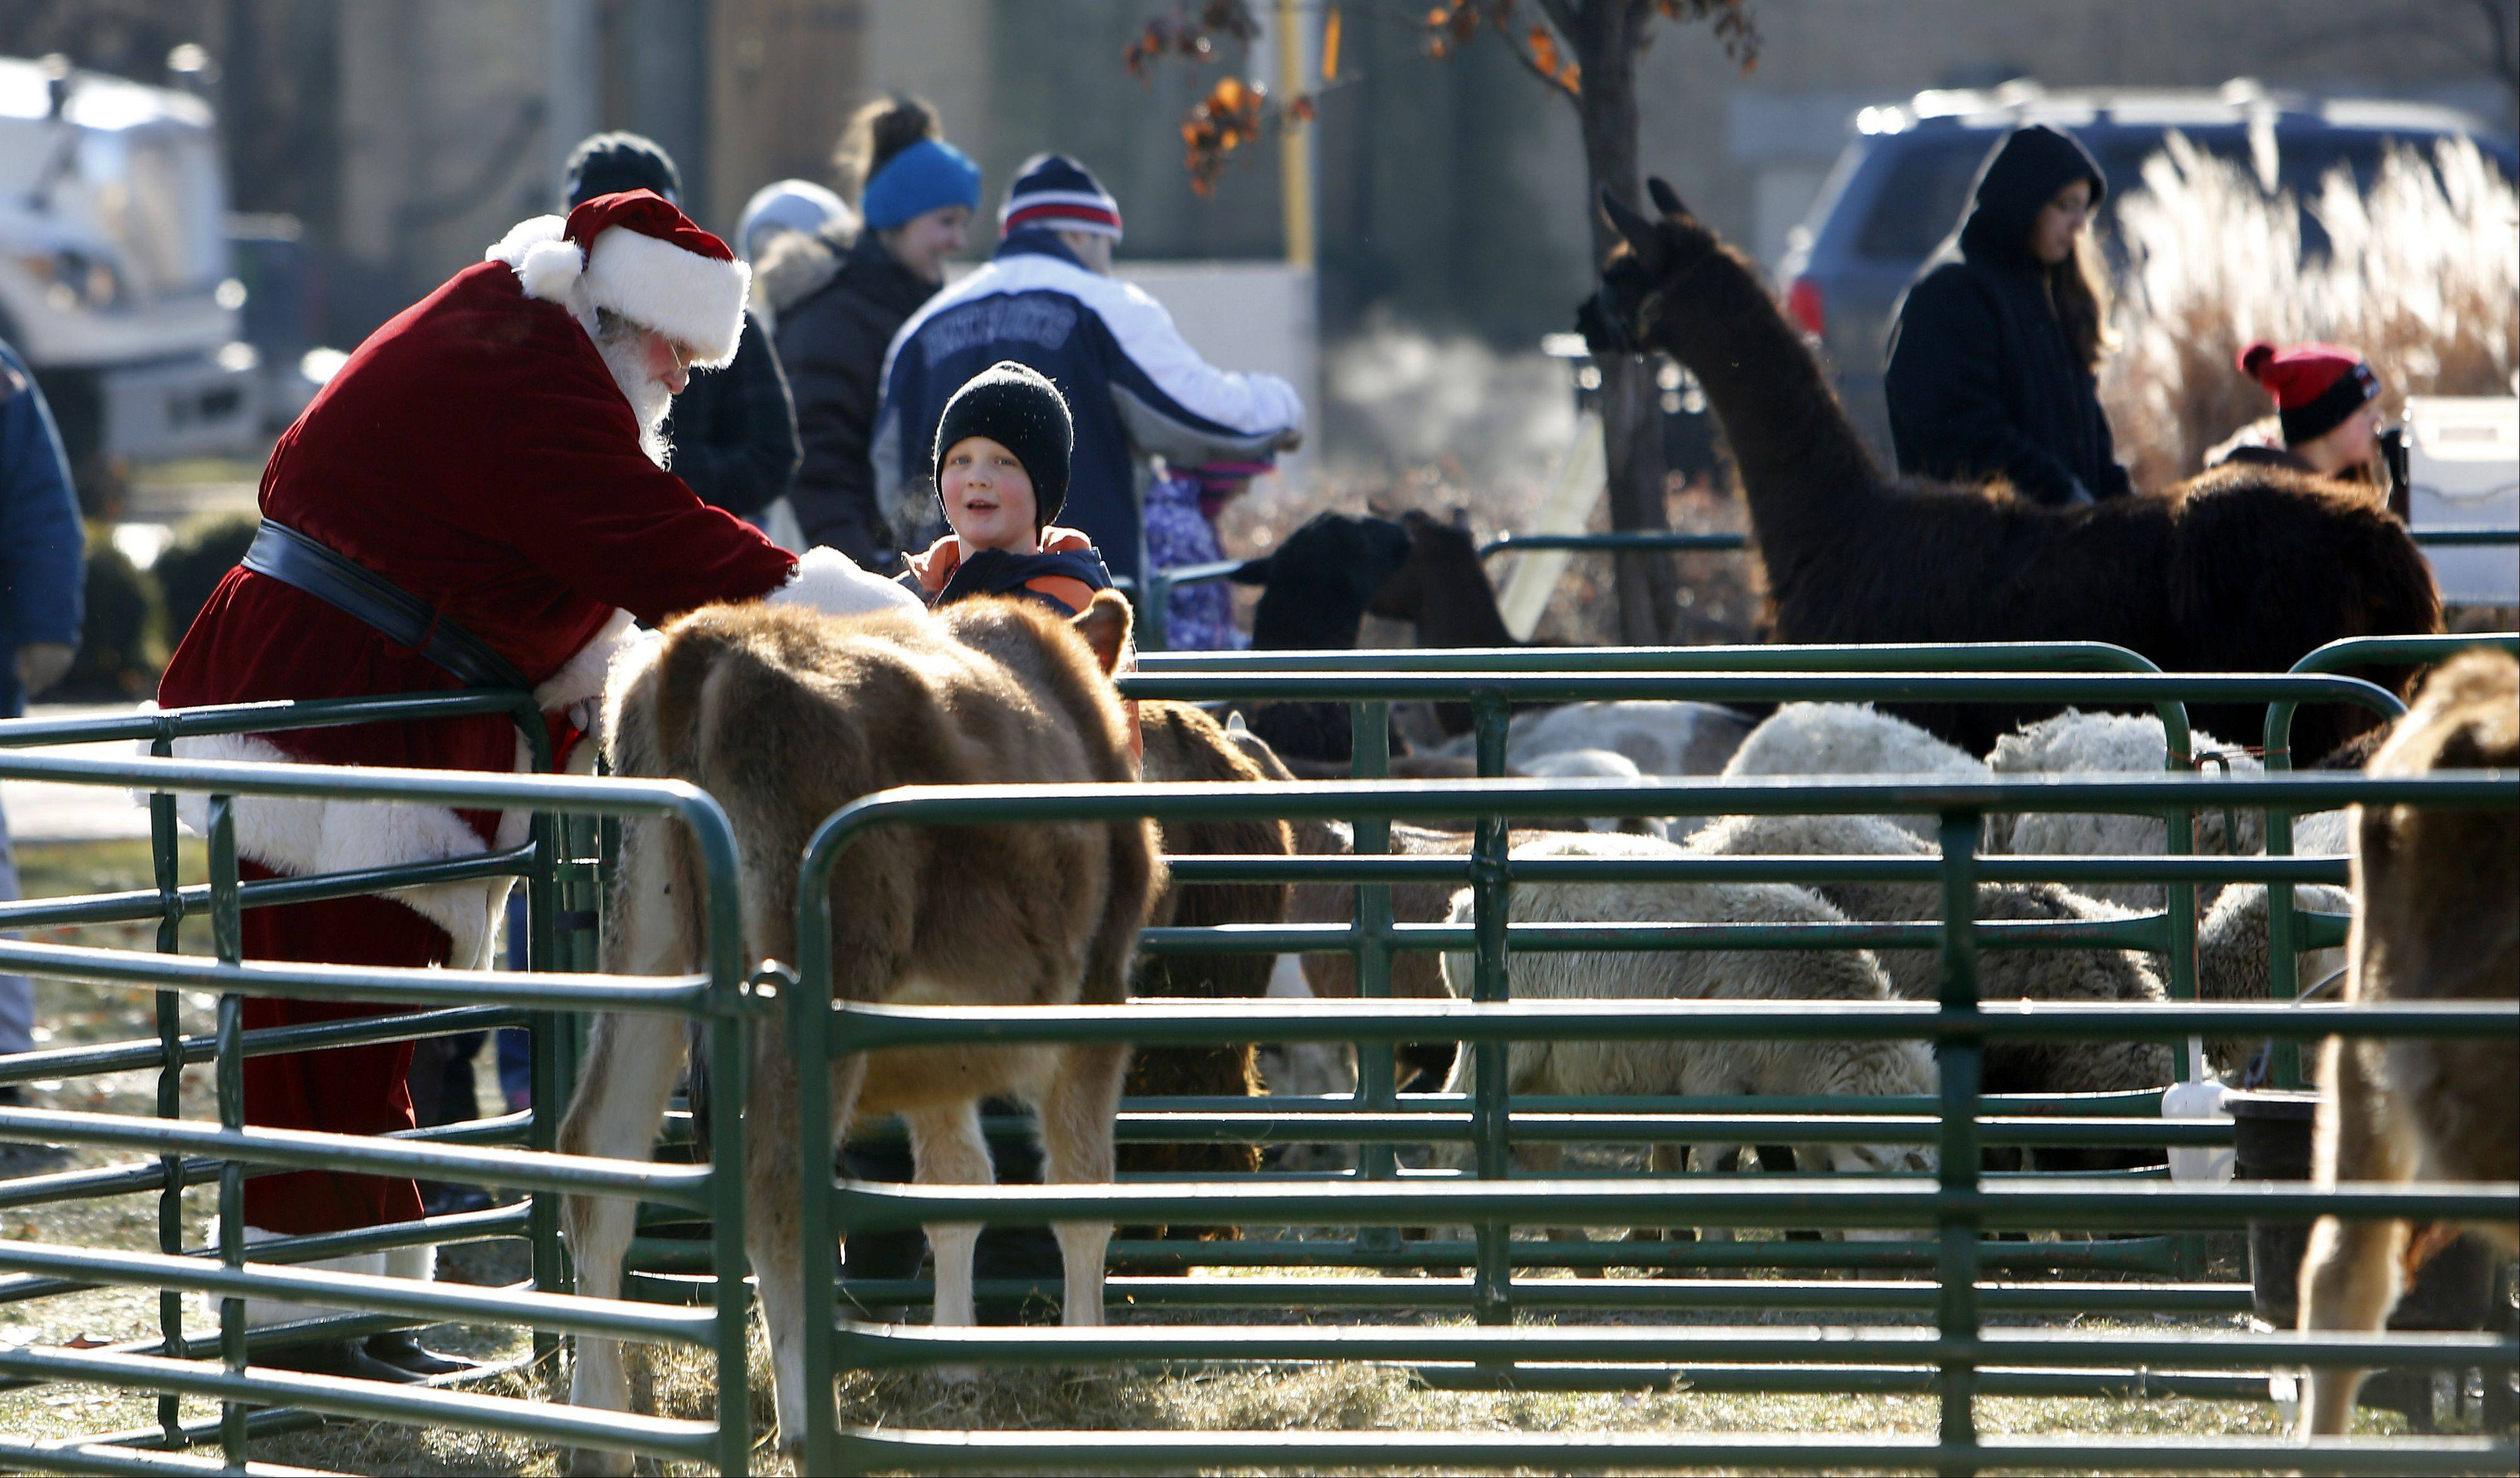 Santa takes a moment to greet some of the animals during the Dickens in Dundee festival at Grafelman Park Saturday in West Dundee.